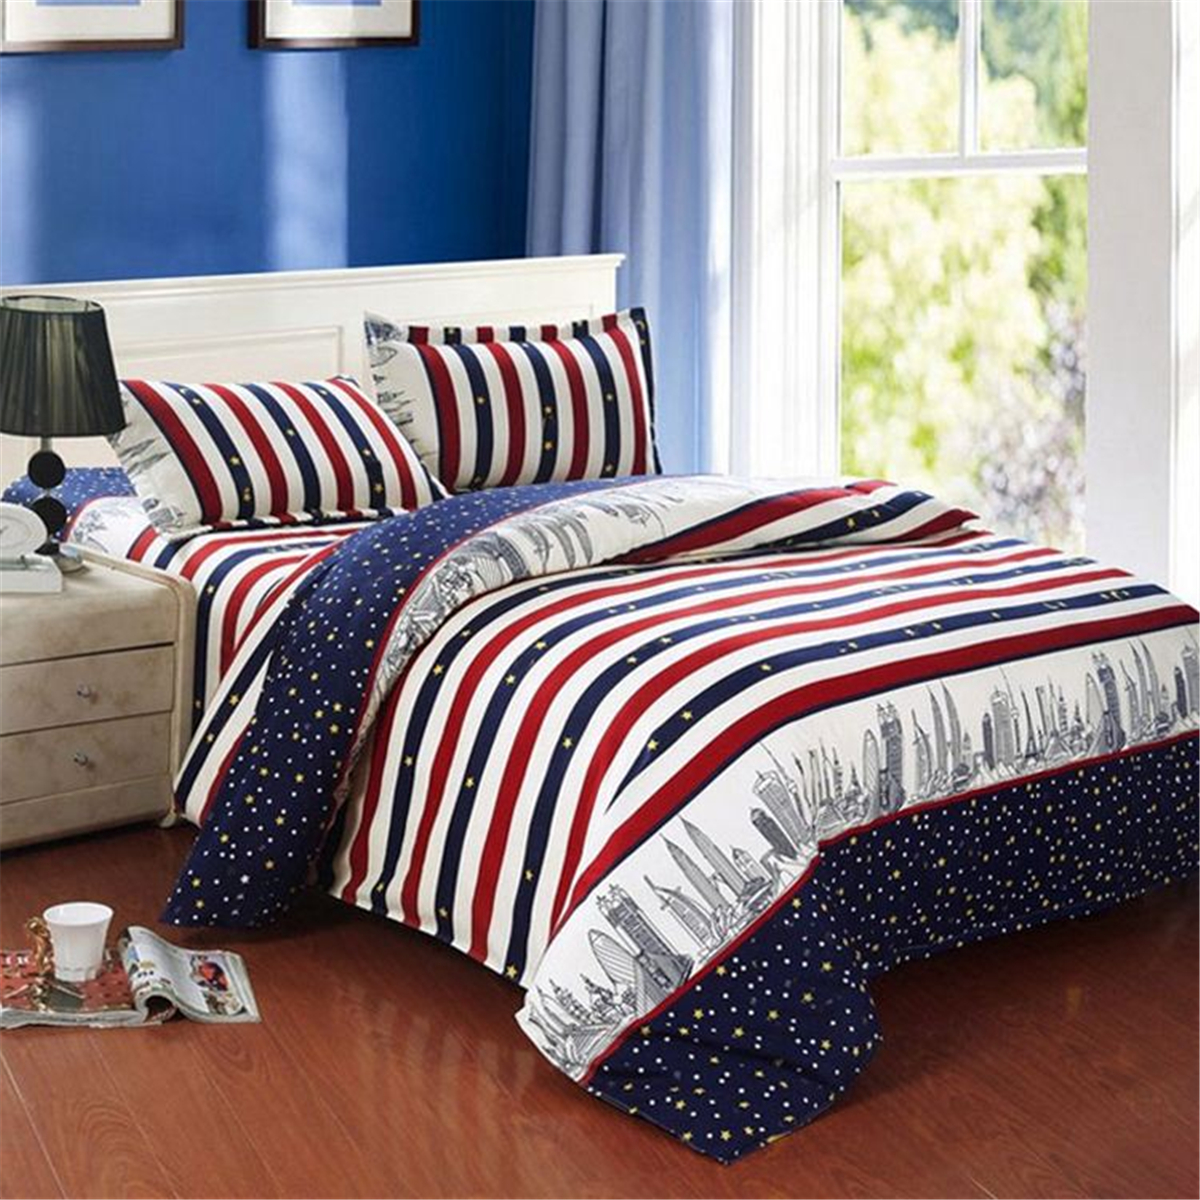 King Single Doona Cover Duvet Quilt Cover Bedding Set Single Double Queen King